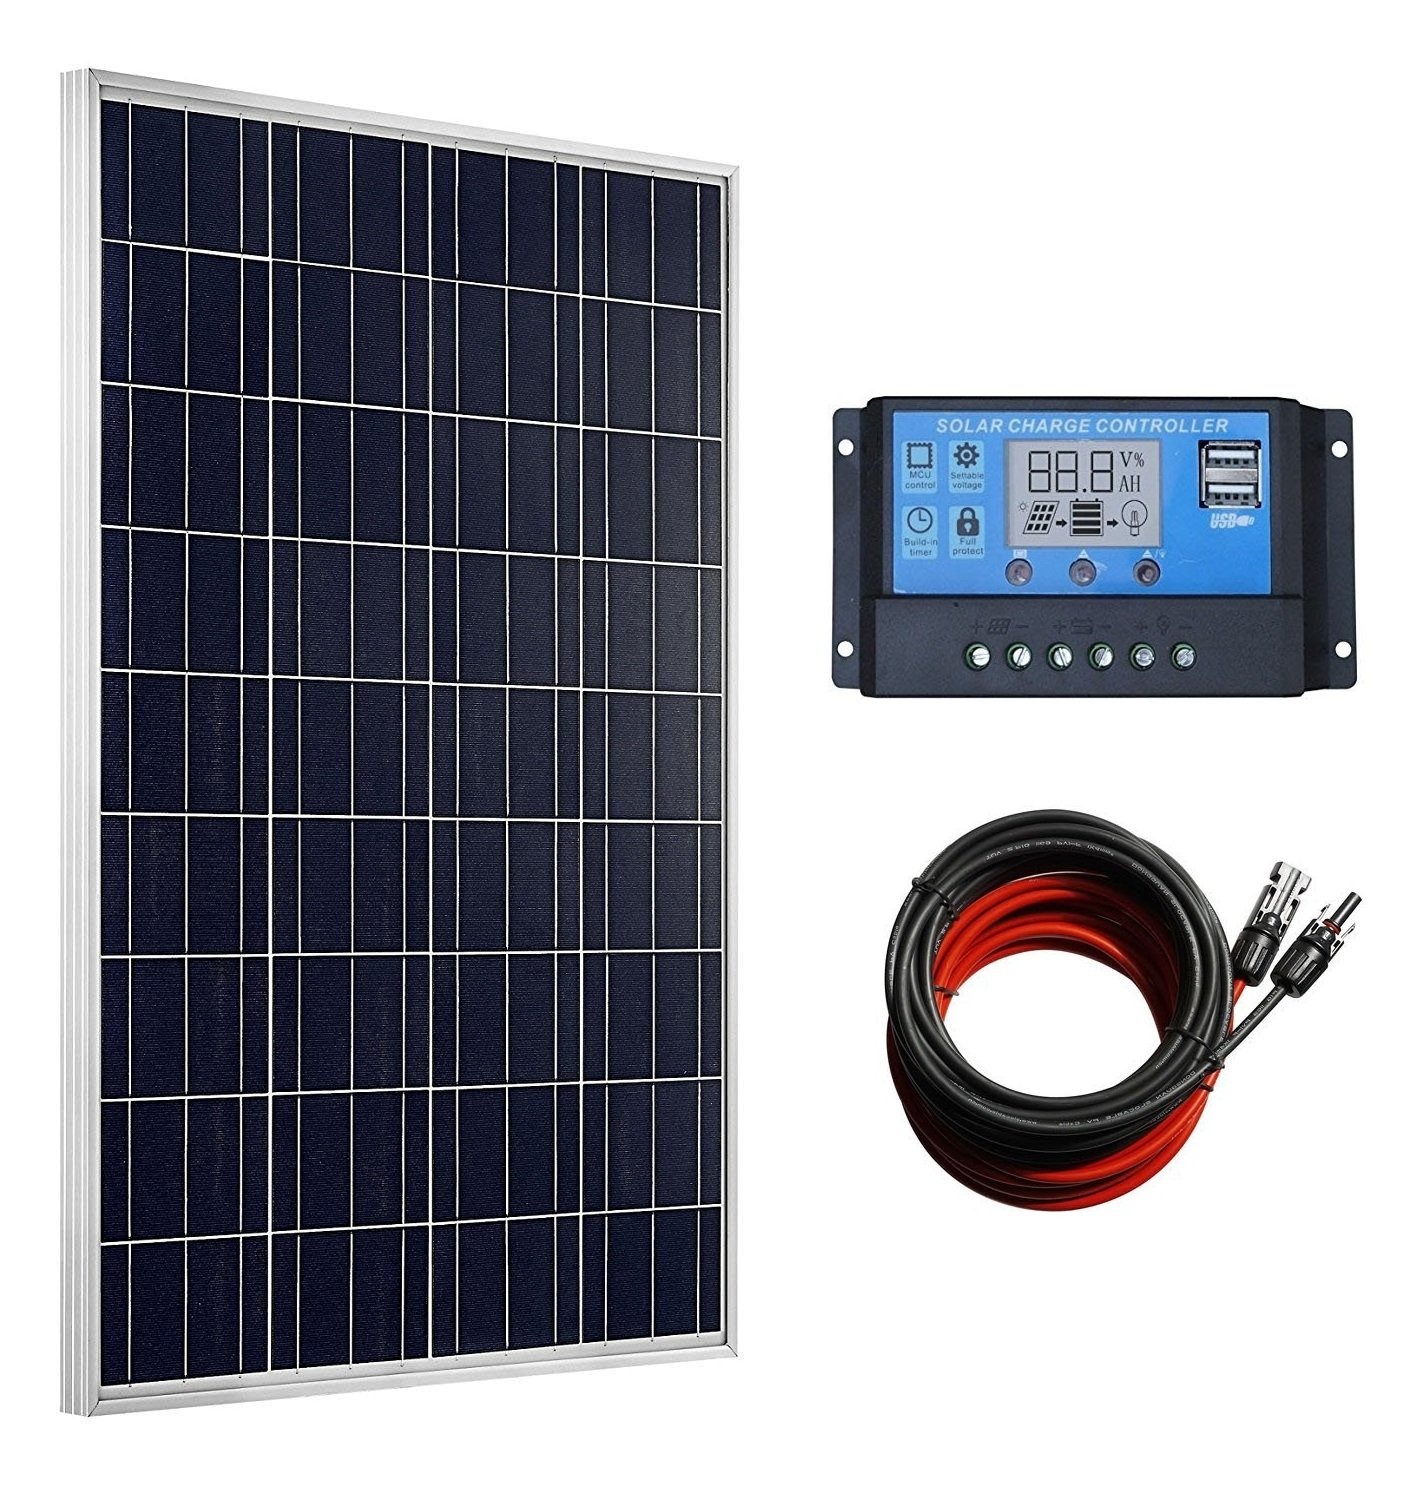 100 Watts Solar Panel + 20A LCD Display PWM Charge Controller + 30 Feet Solar Cable Adaptor for Off-Grid RV Boat Kit